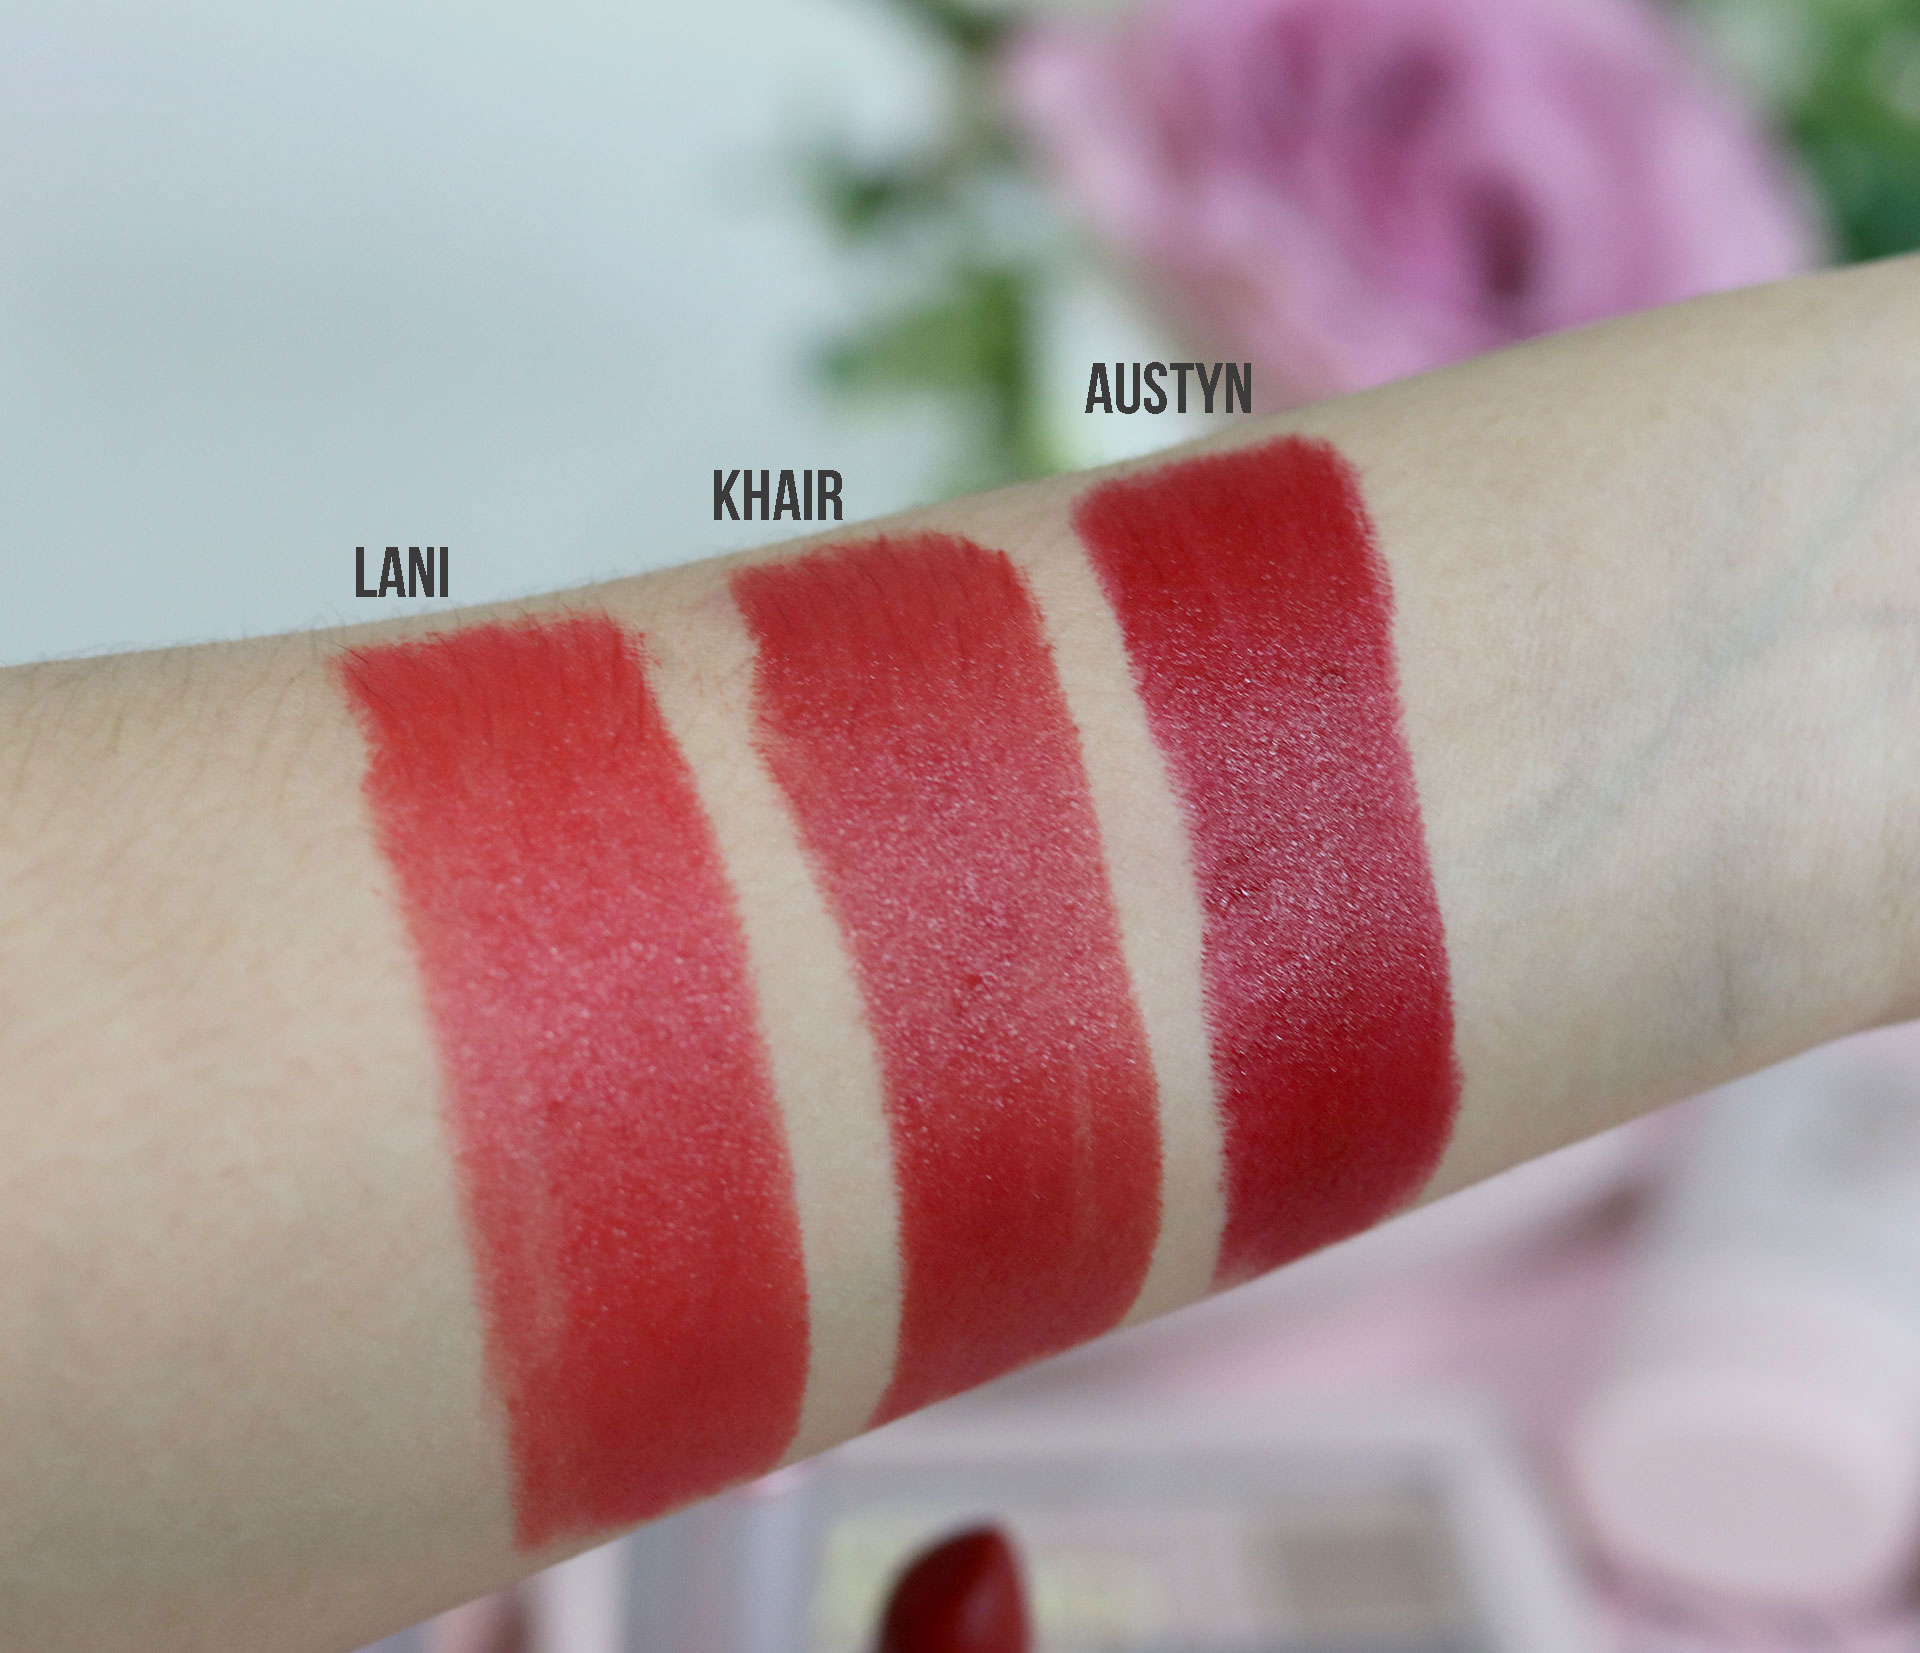 34 Gigi Hadid Maybelline Collection Review Swatches Photos - Gen-zel She Sings Beauty